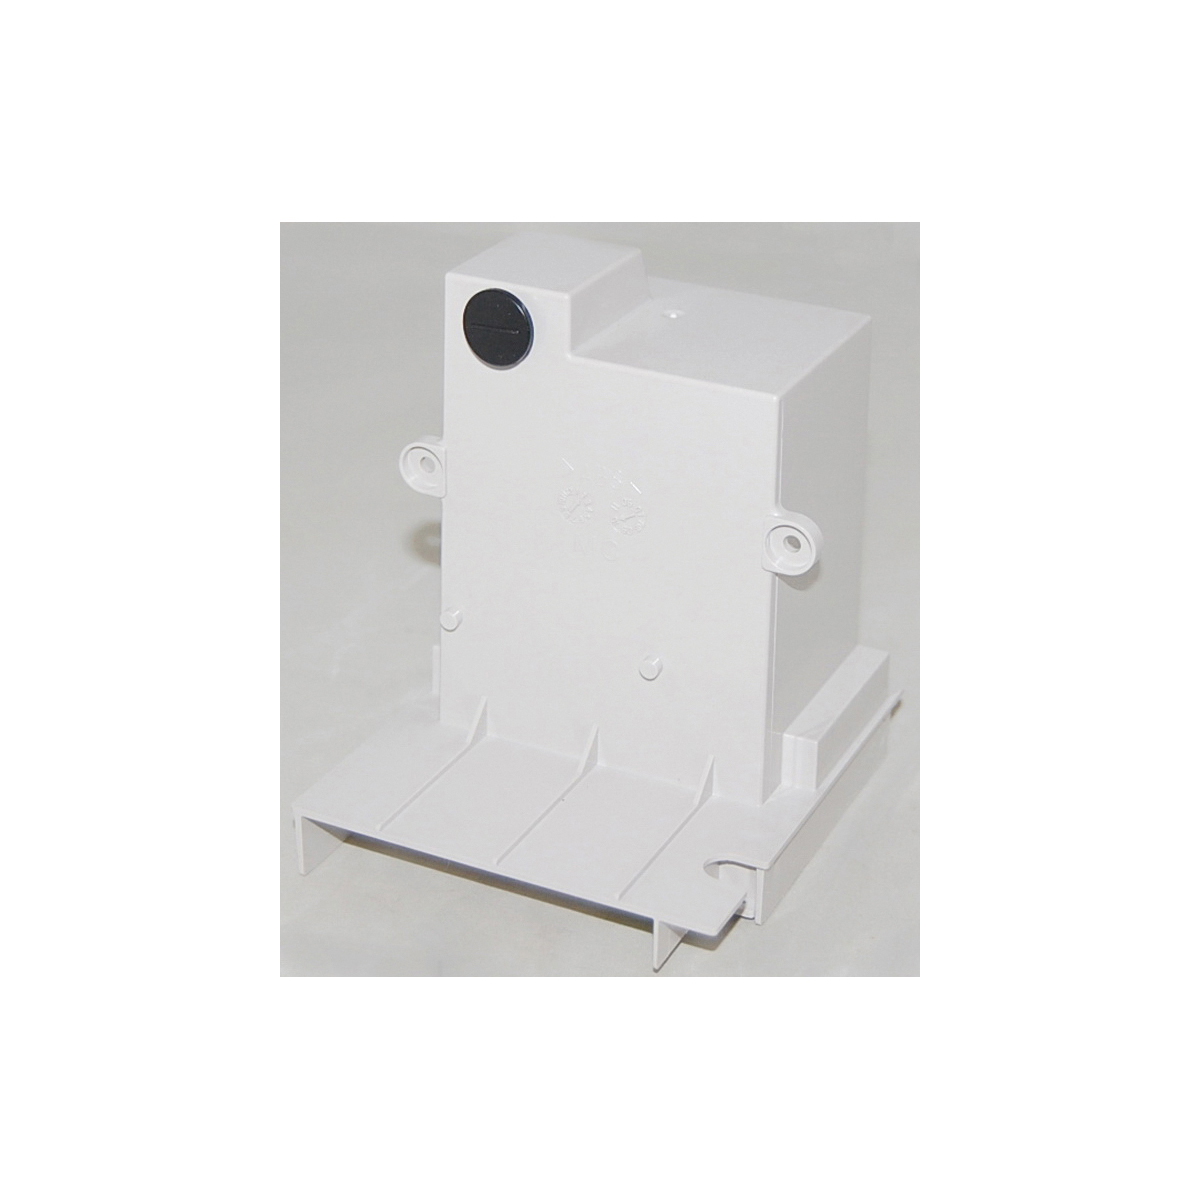 Toto® TH559EDV560 Thermal Dynamo Control Unit, For Use With EcoPower® TEL5GT Fordham™ Spout Sensor Faucet, 10 sec, ABS/Polypropylene